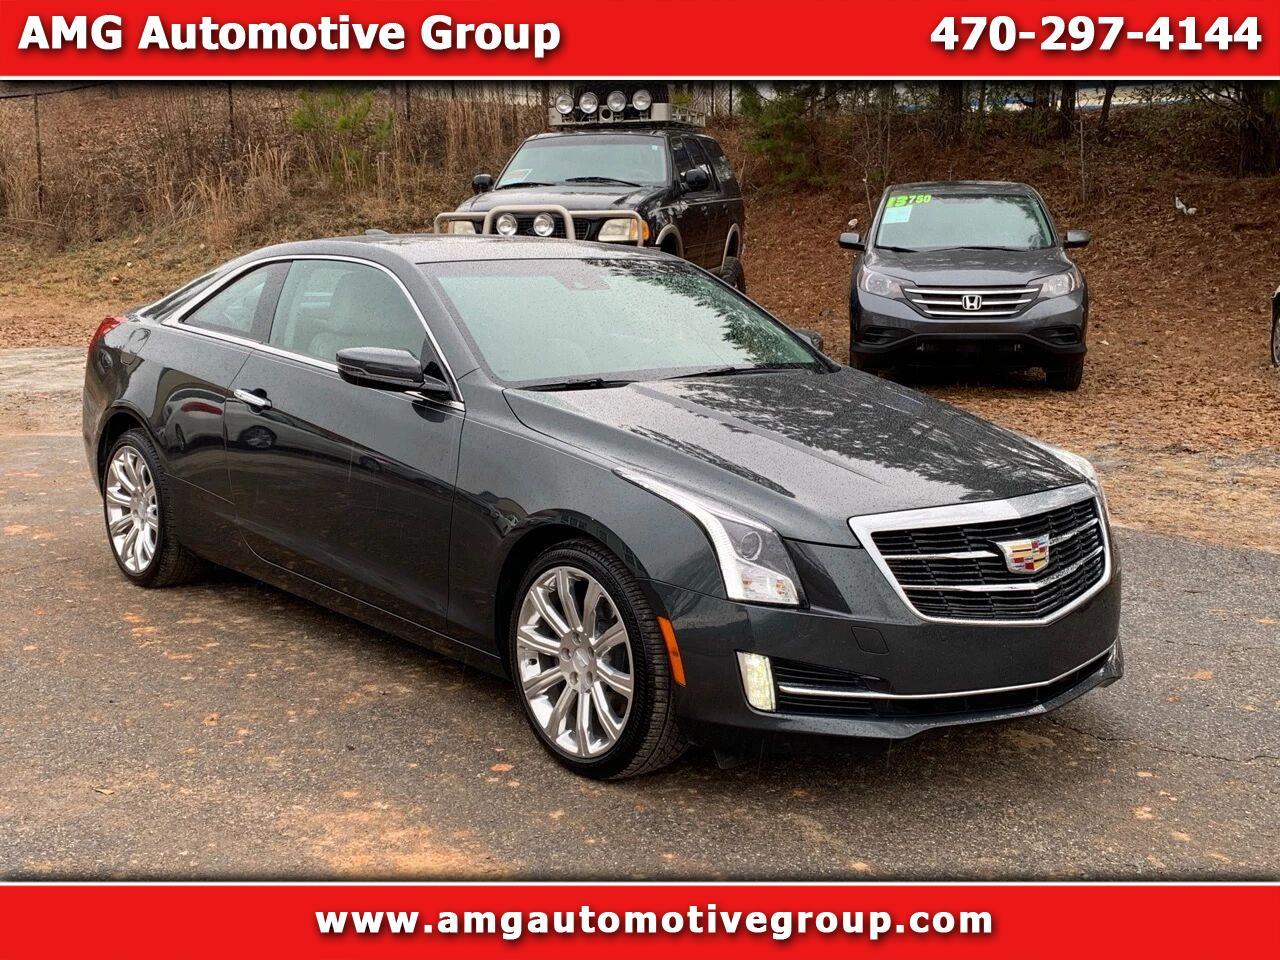 Cadillac ATS Coupe 2.0L Turbo Performance RWD 2015